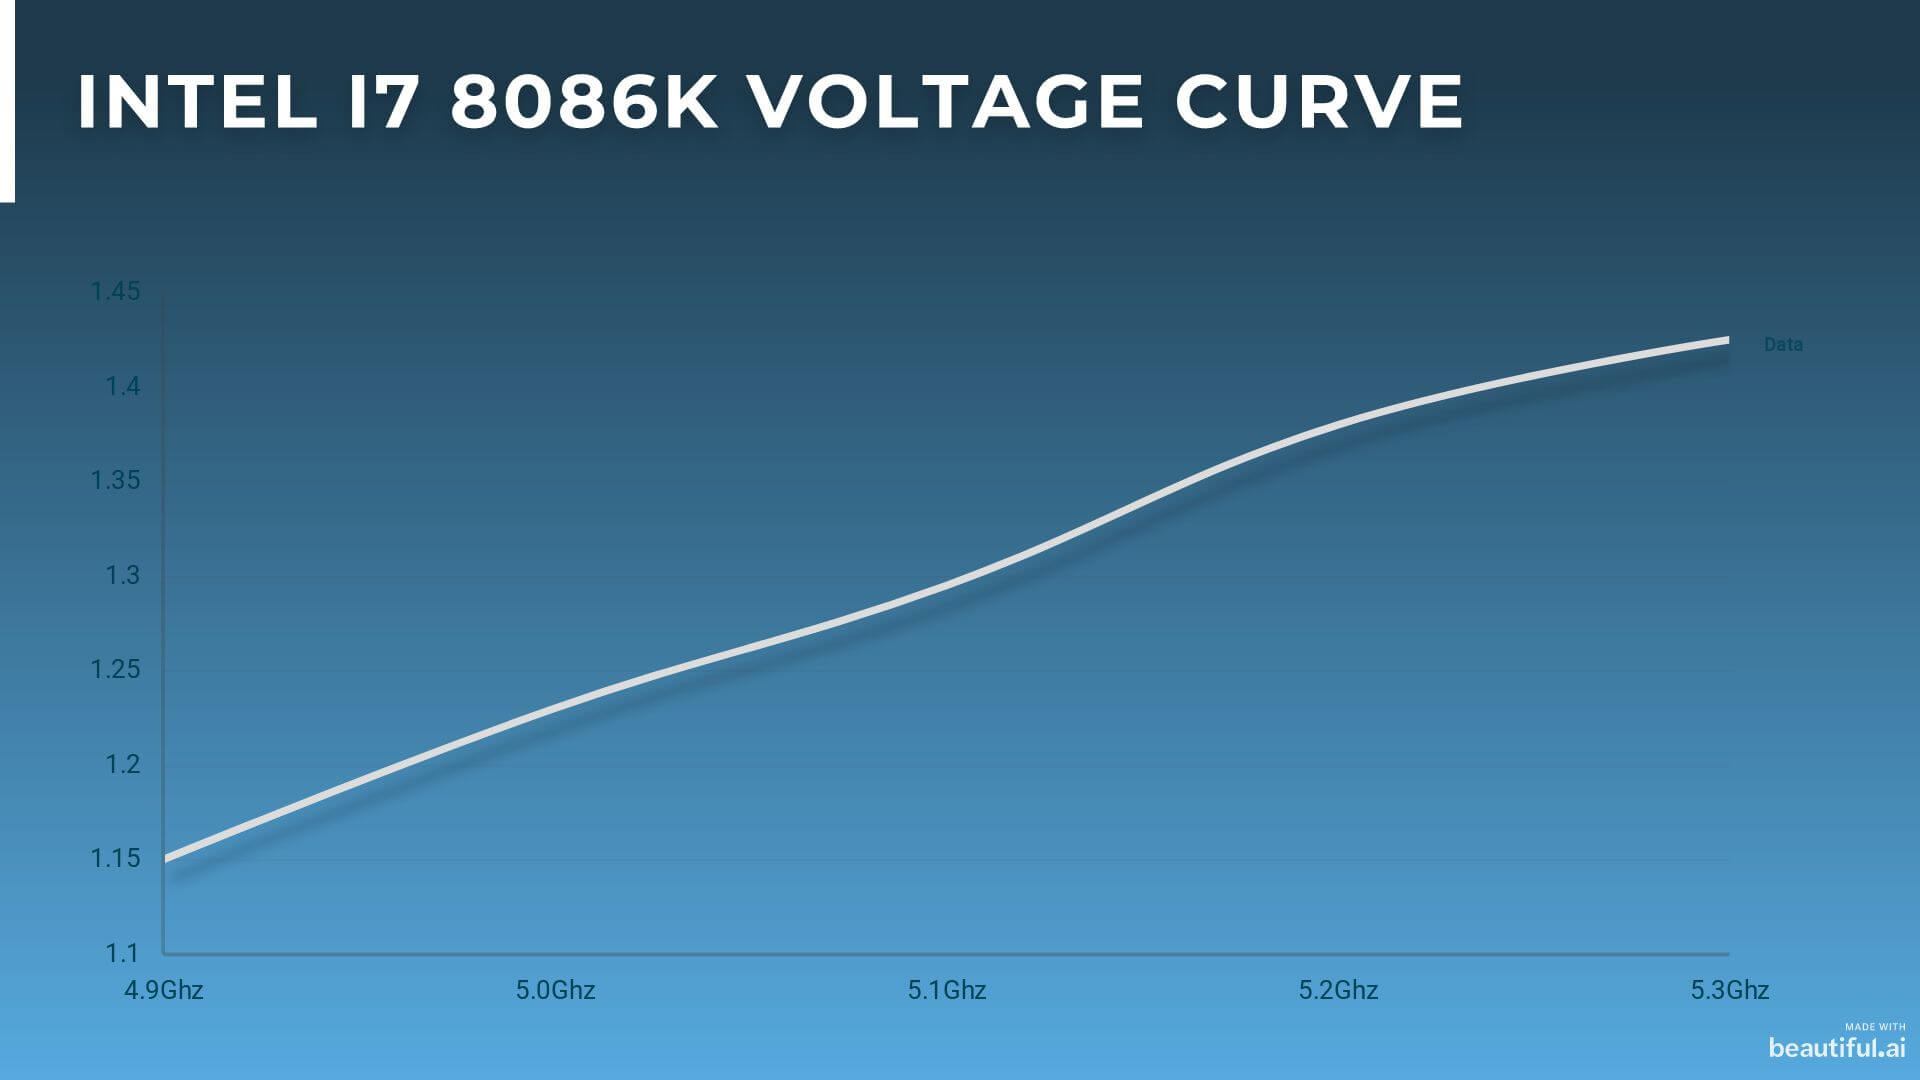 Voltage Curve from 4.9Ghz to 5.3Ghz